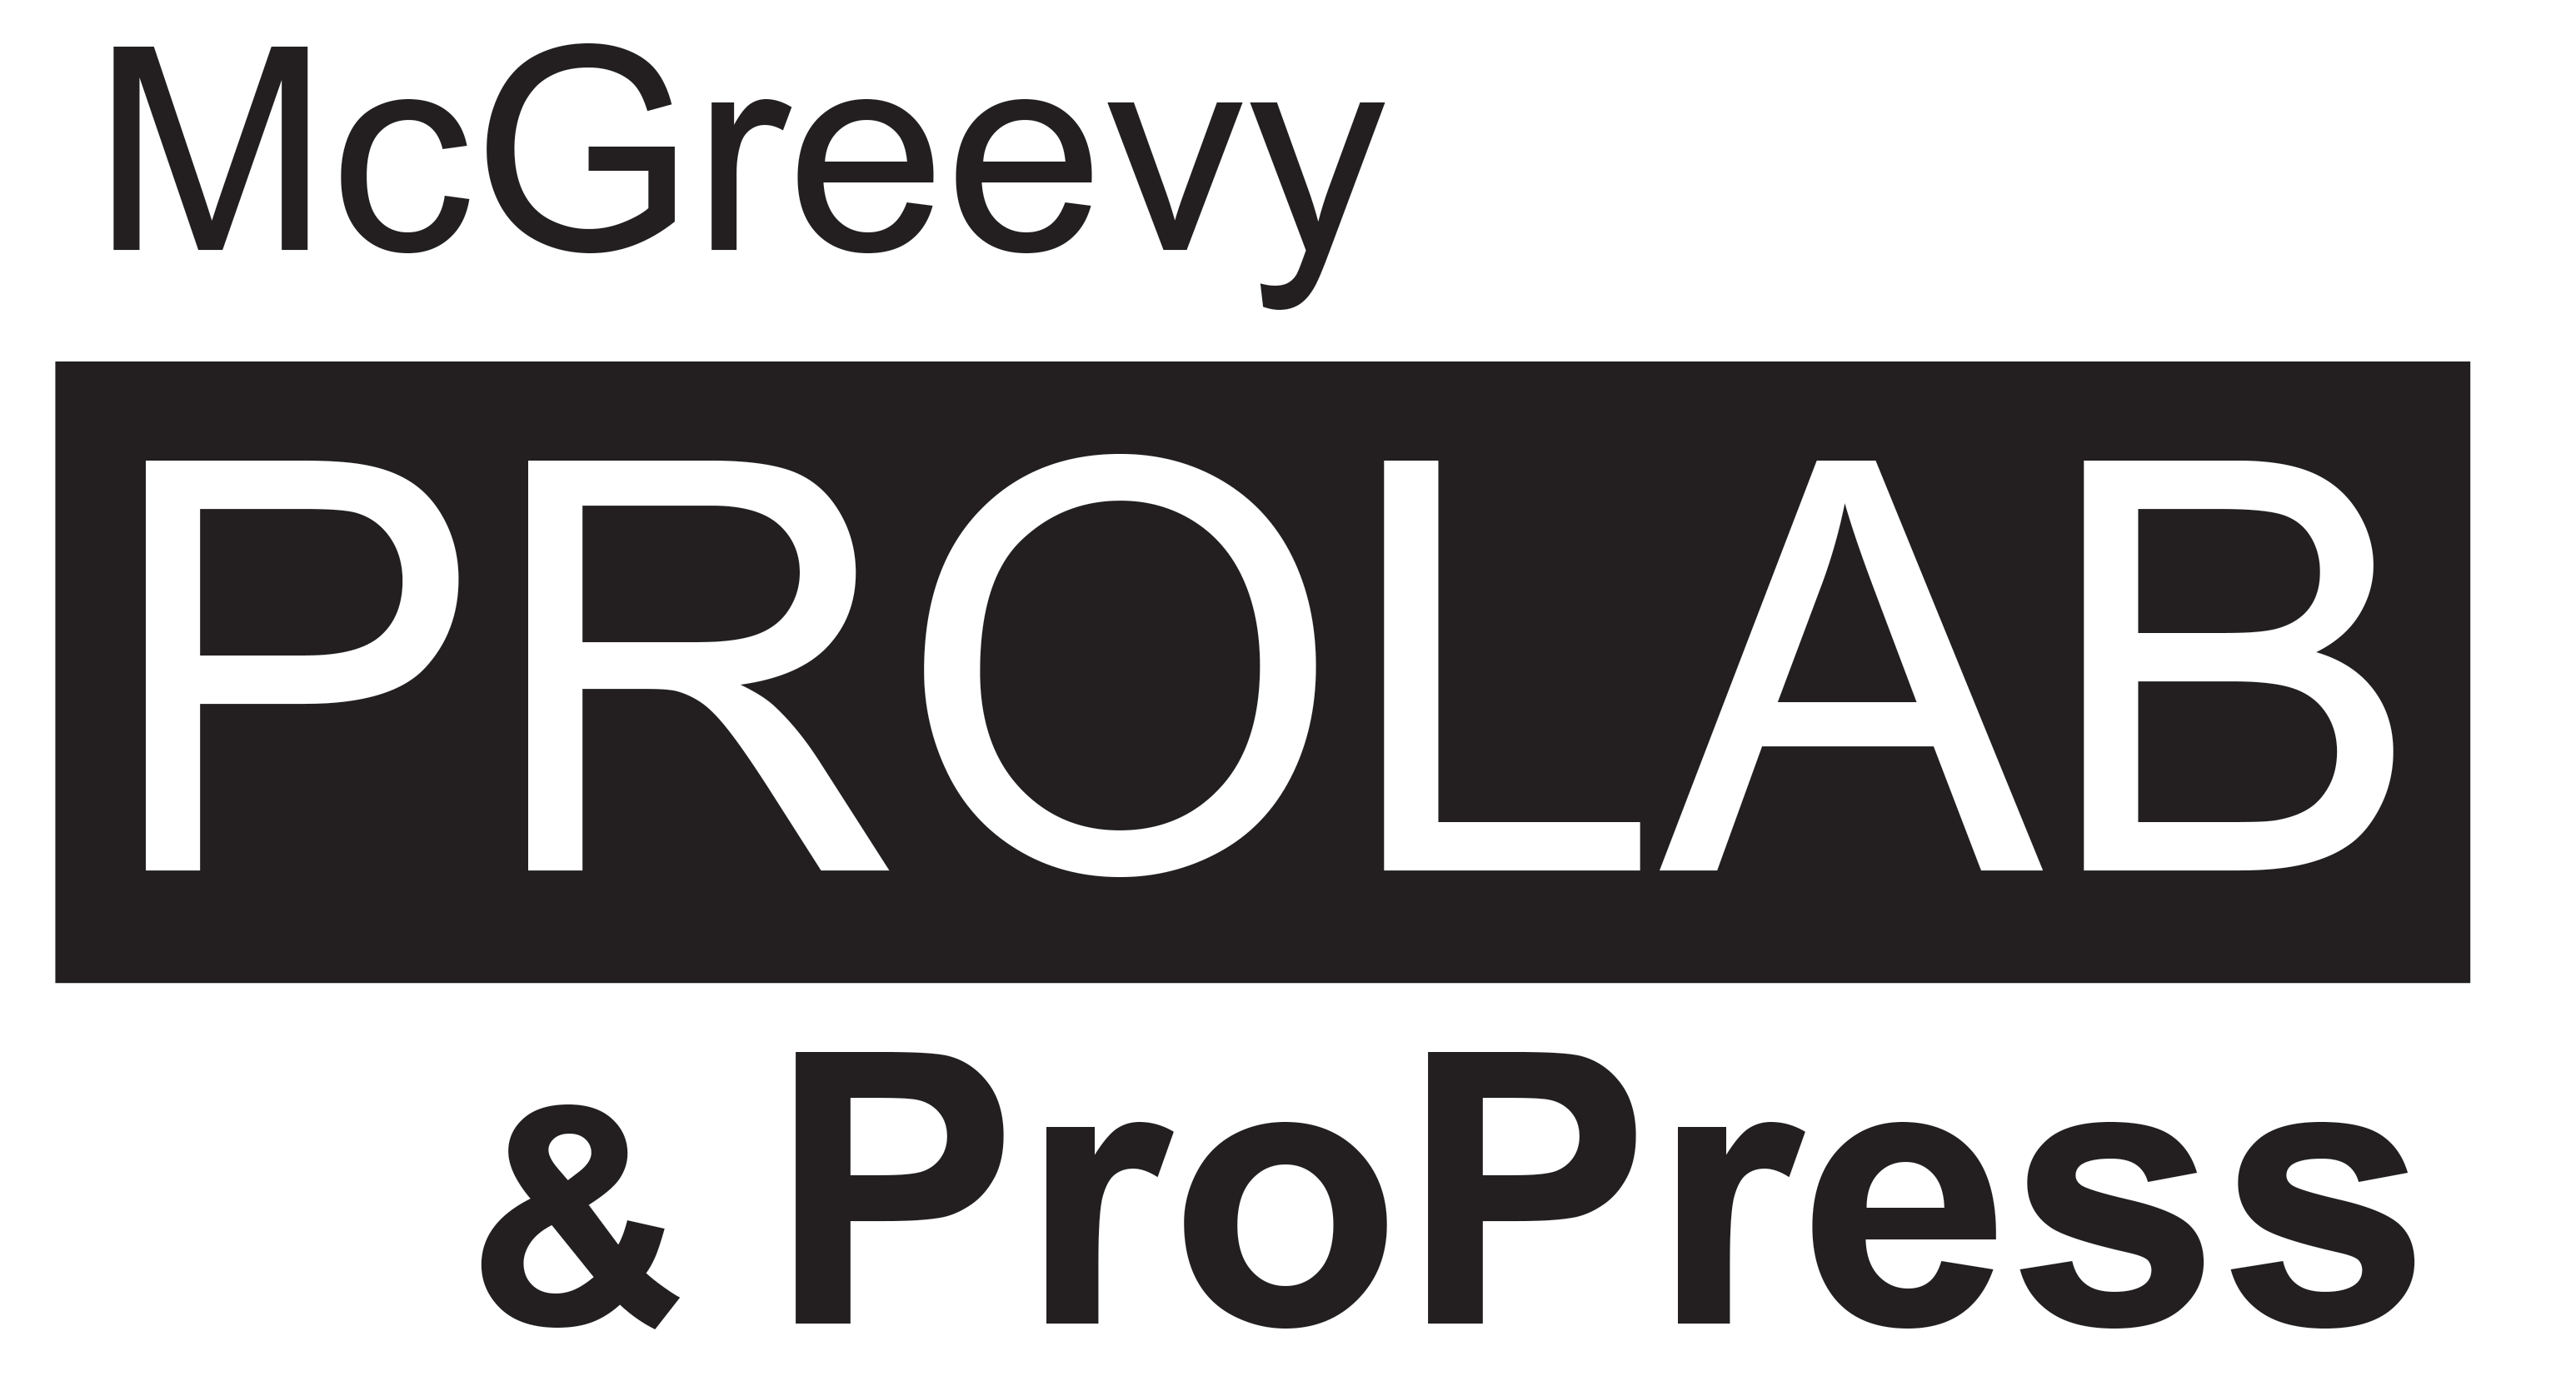 McGreevy Prolab & ProPress